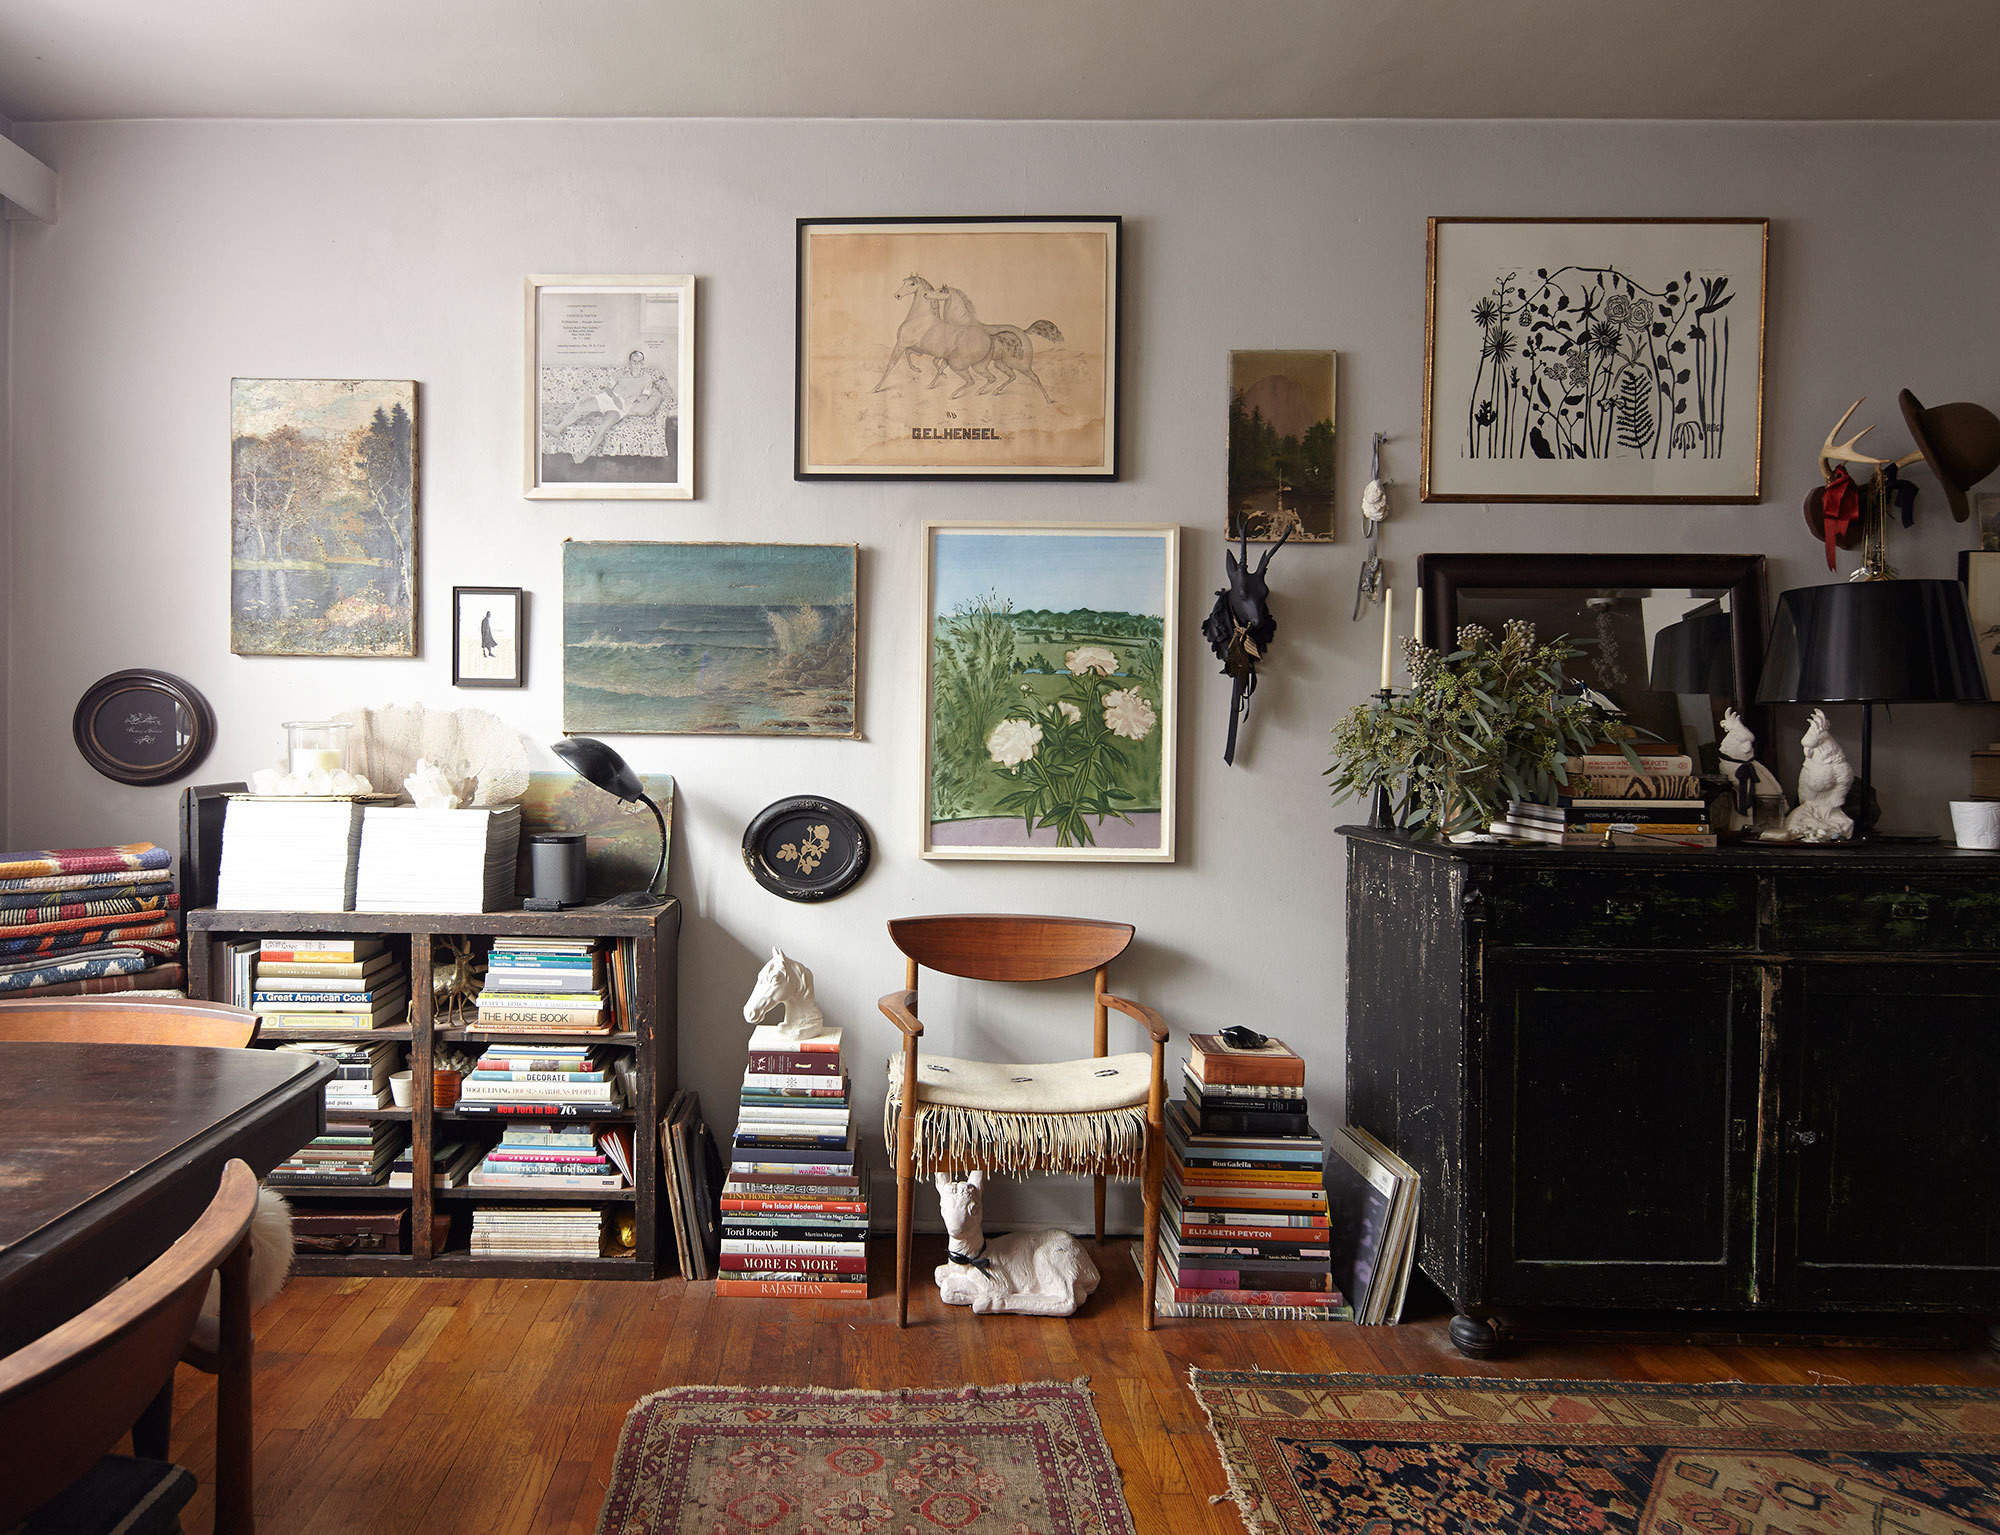 The main living area of Ann Stephenson and Lori Scacco's East Village studio, filled with meaningful art, books, textiles, and objects.